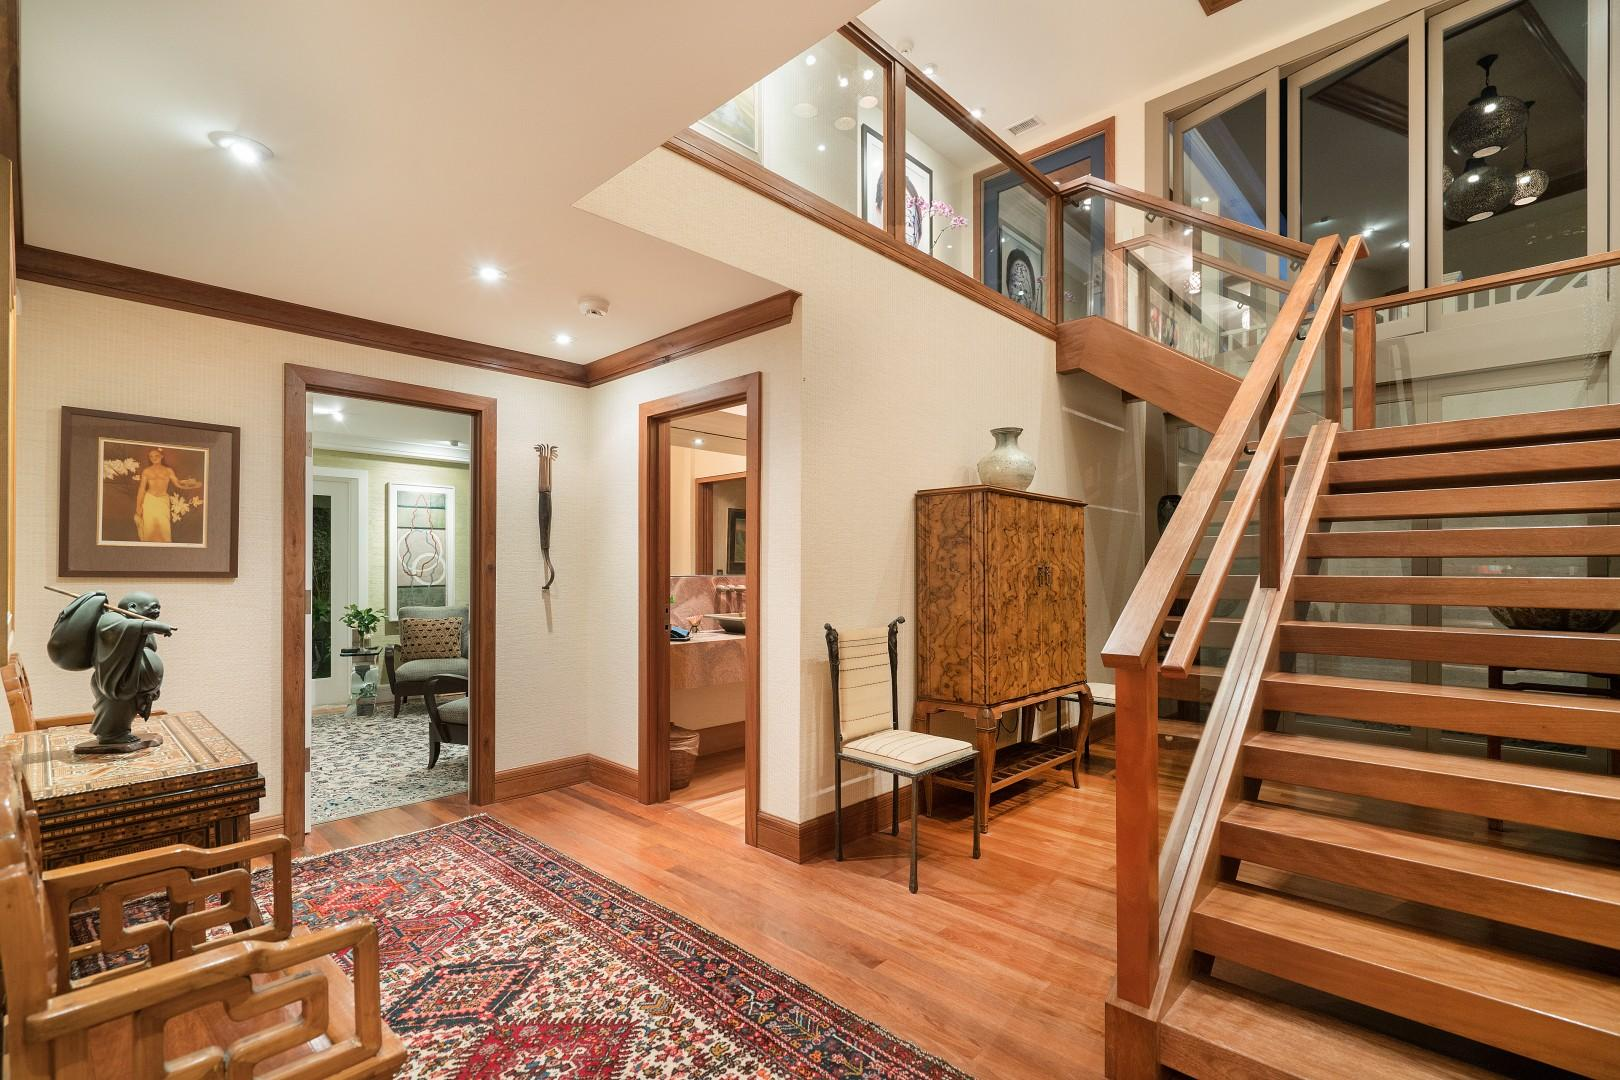 Office, powder room, and stairs